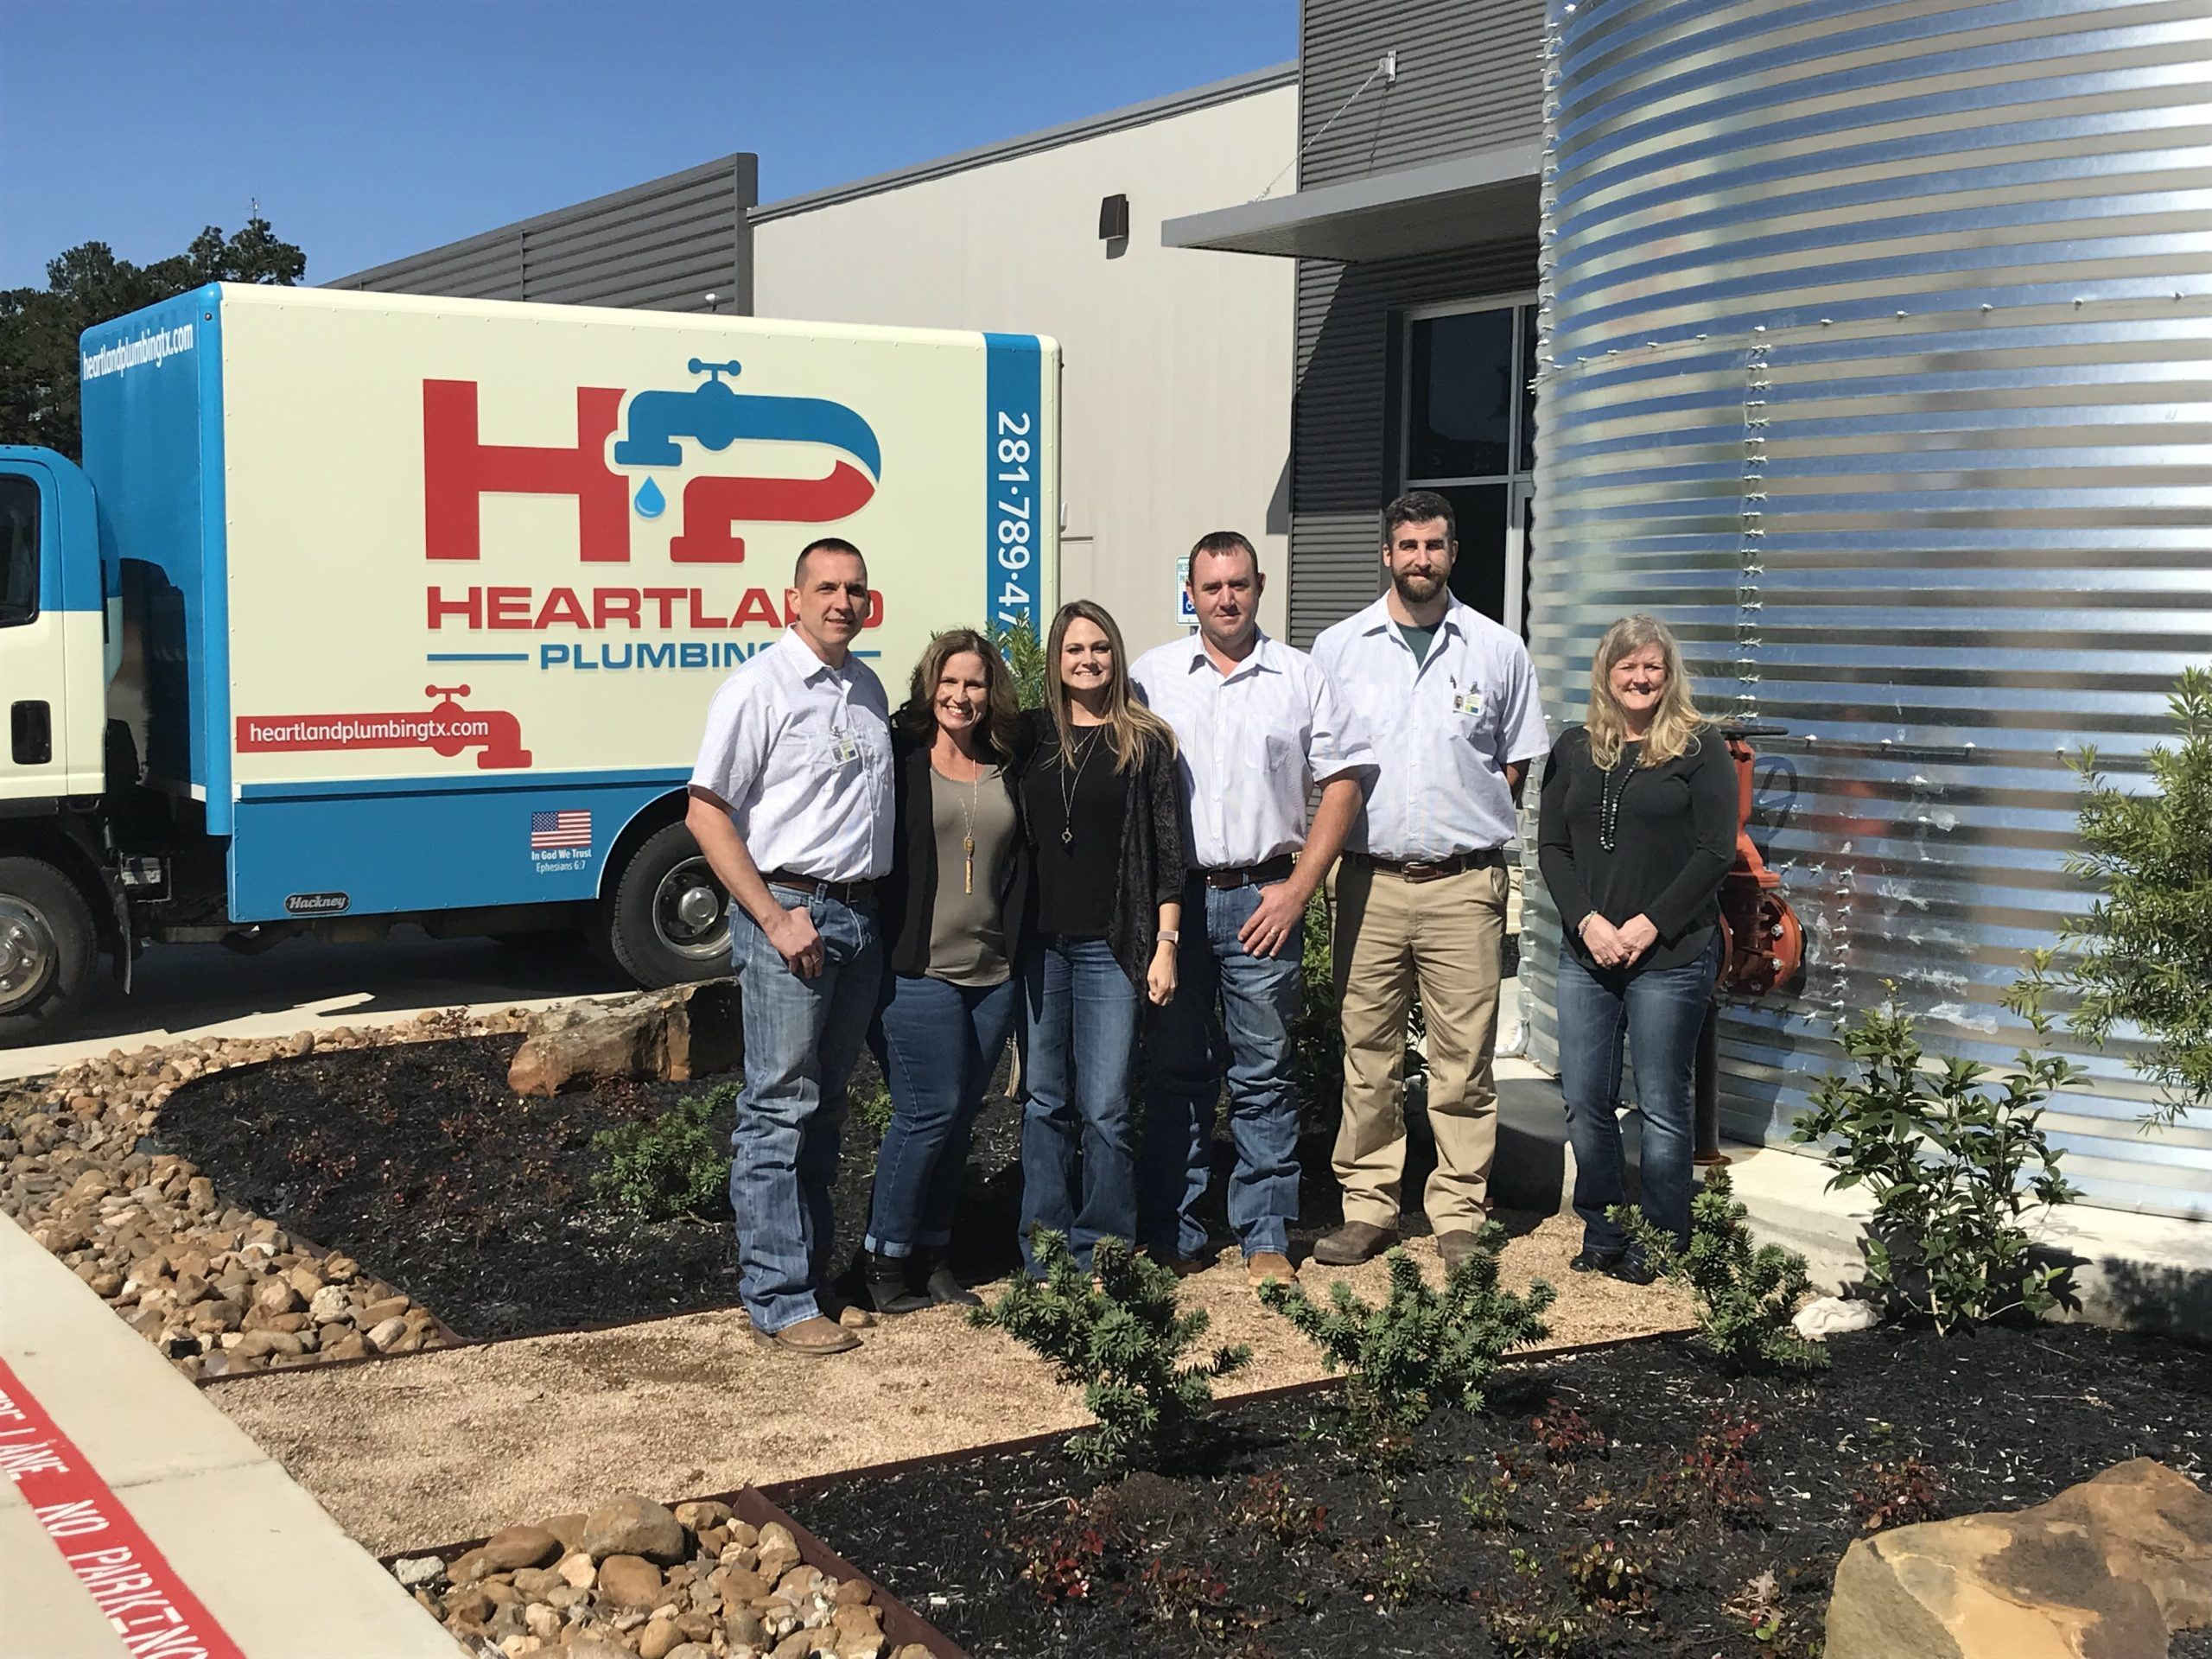 Heartland Plumbing Magnolia TX Group Photo